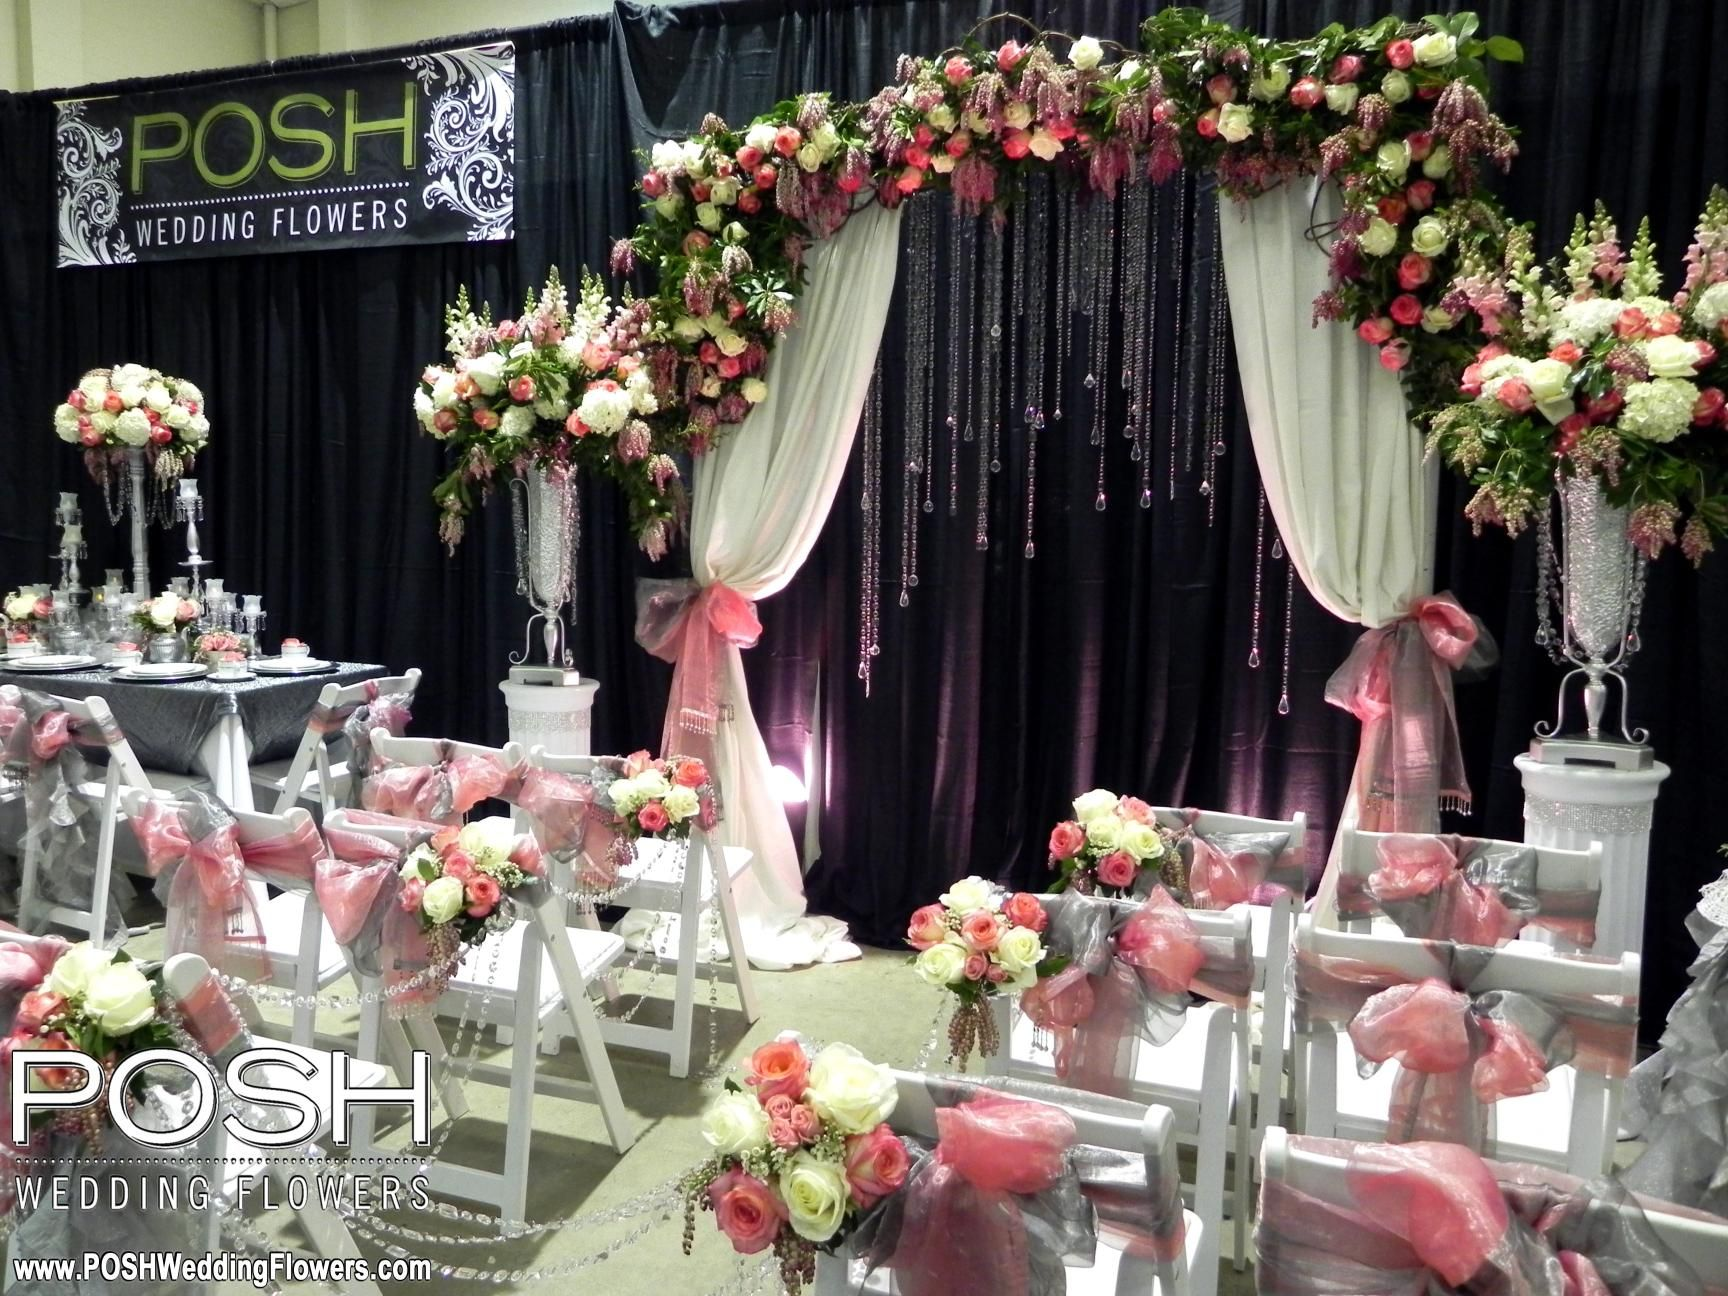 Posh Wedding Flowers Booth At The Spring Tacoma Expo